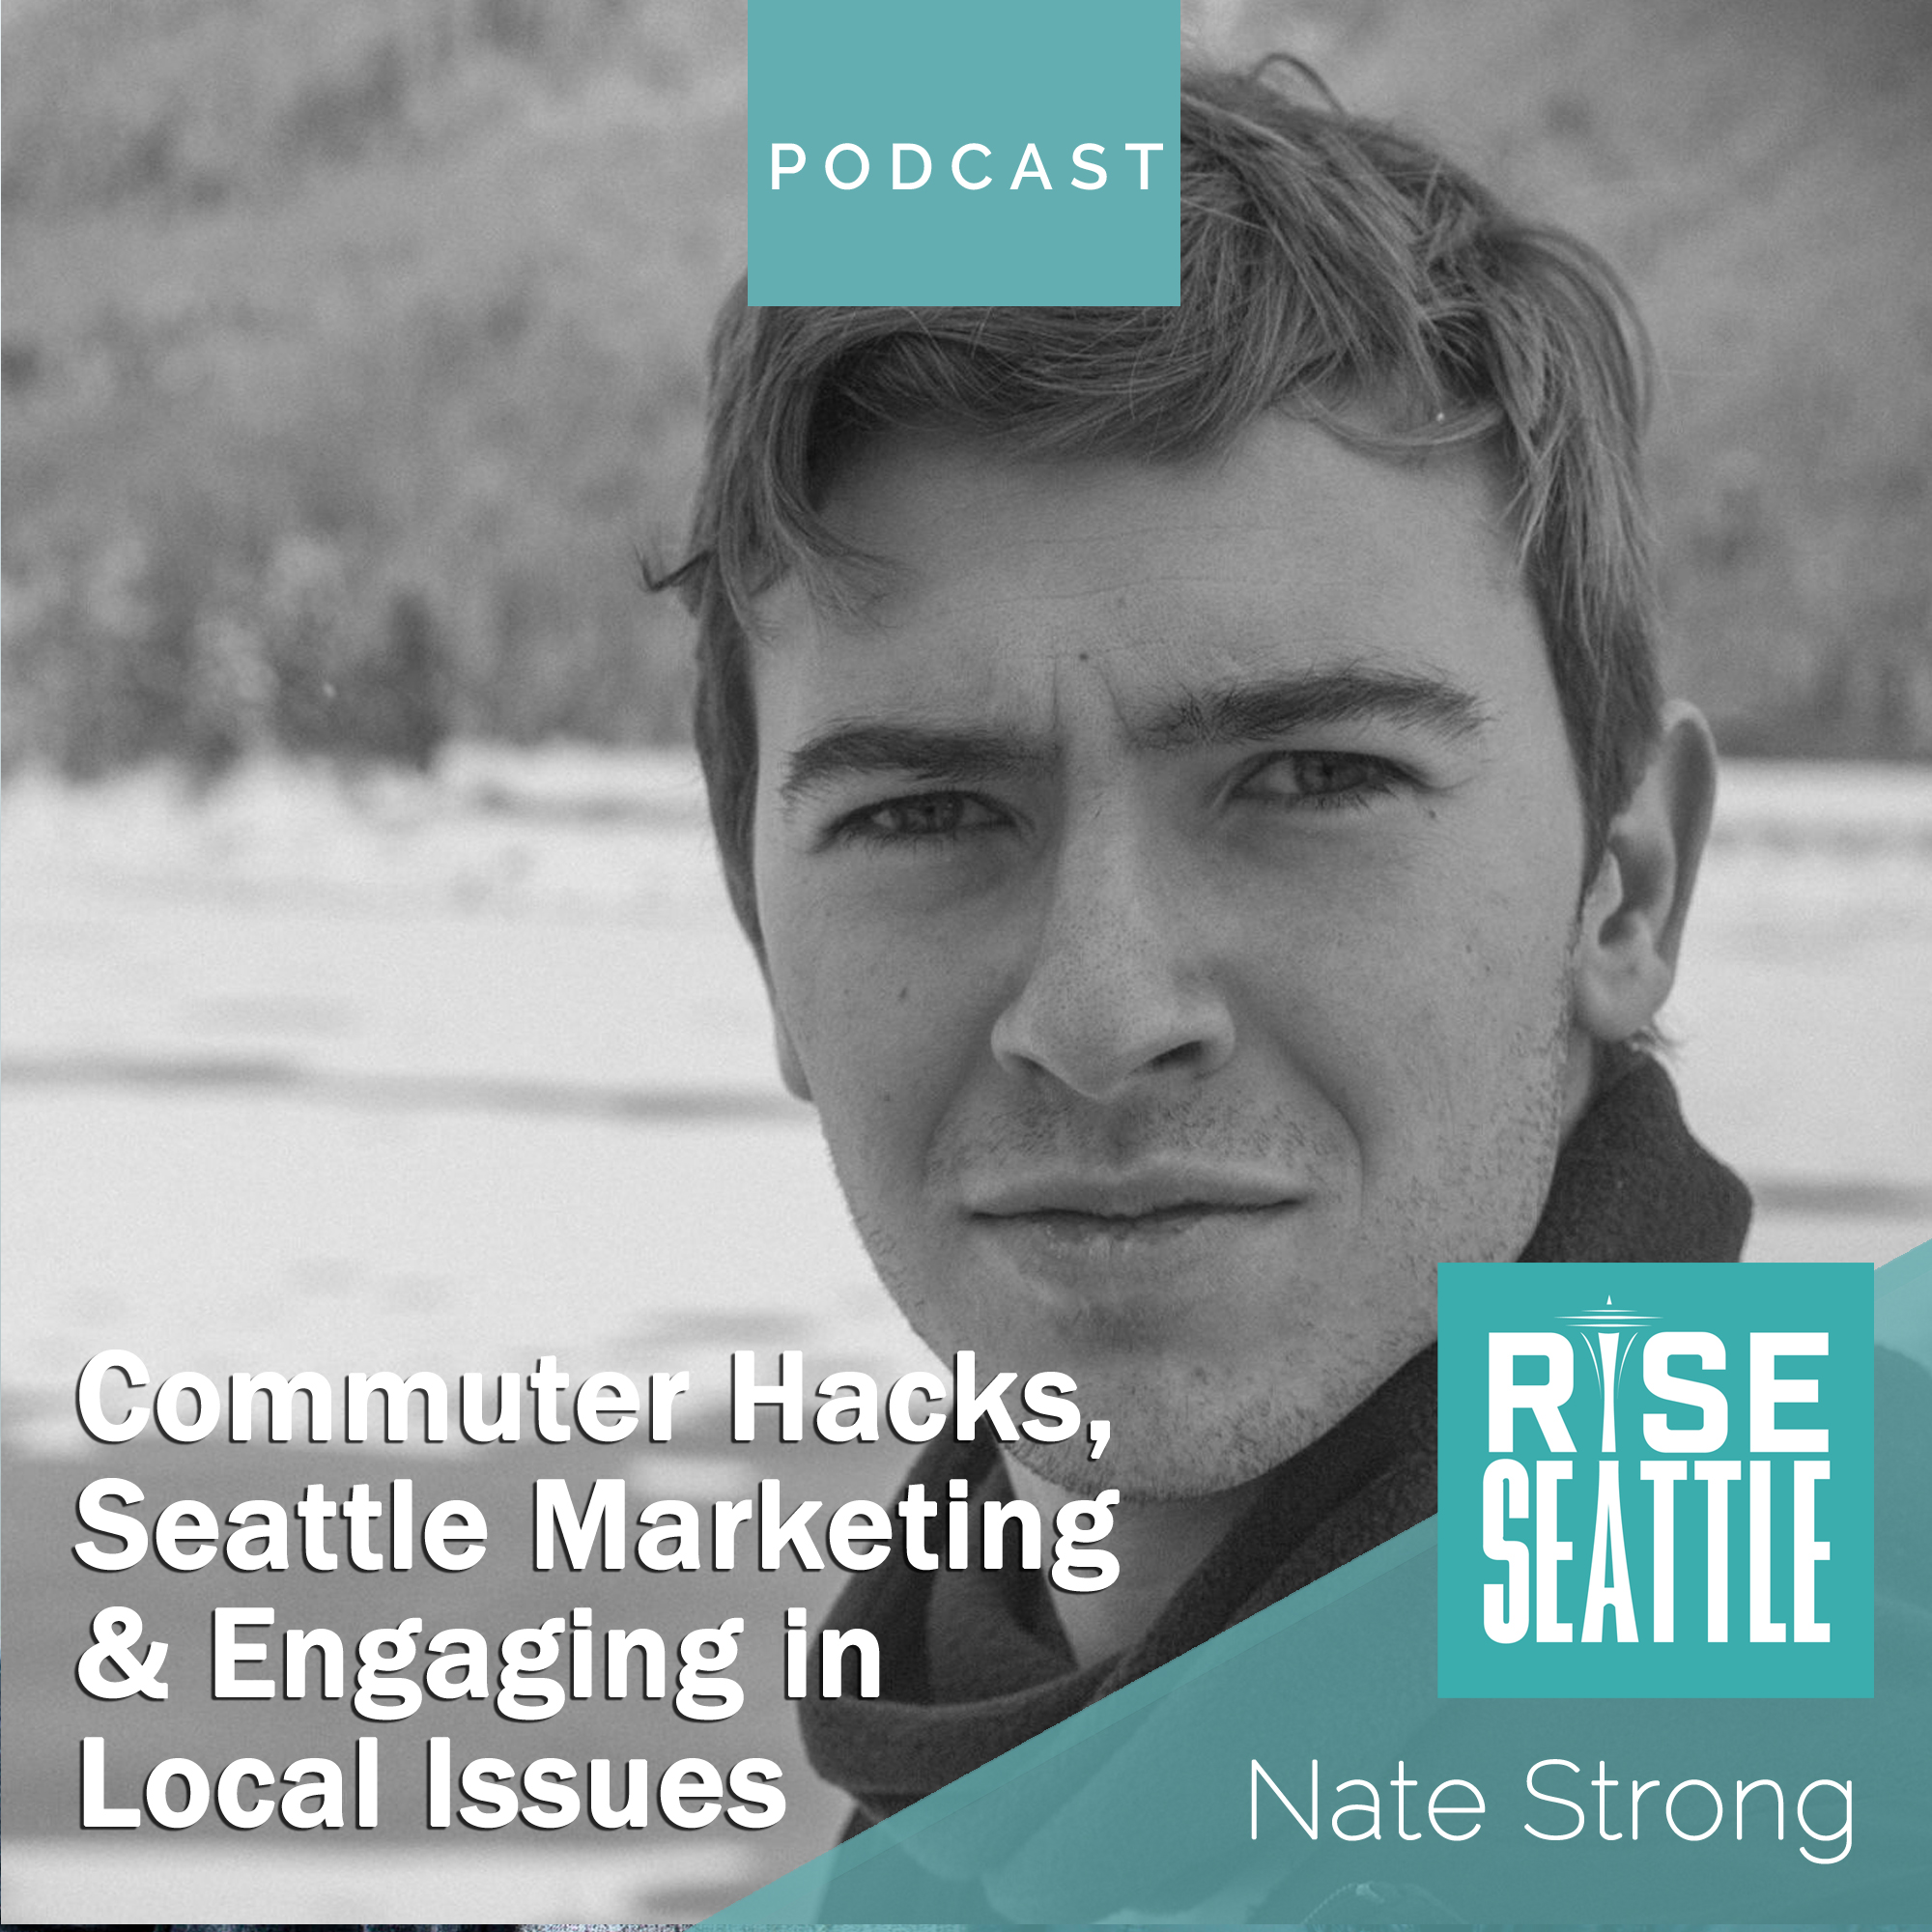 S1.E15. Nate Strong: Commuter Hacks, Seattle Marketing & Engaging in Local Issues